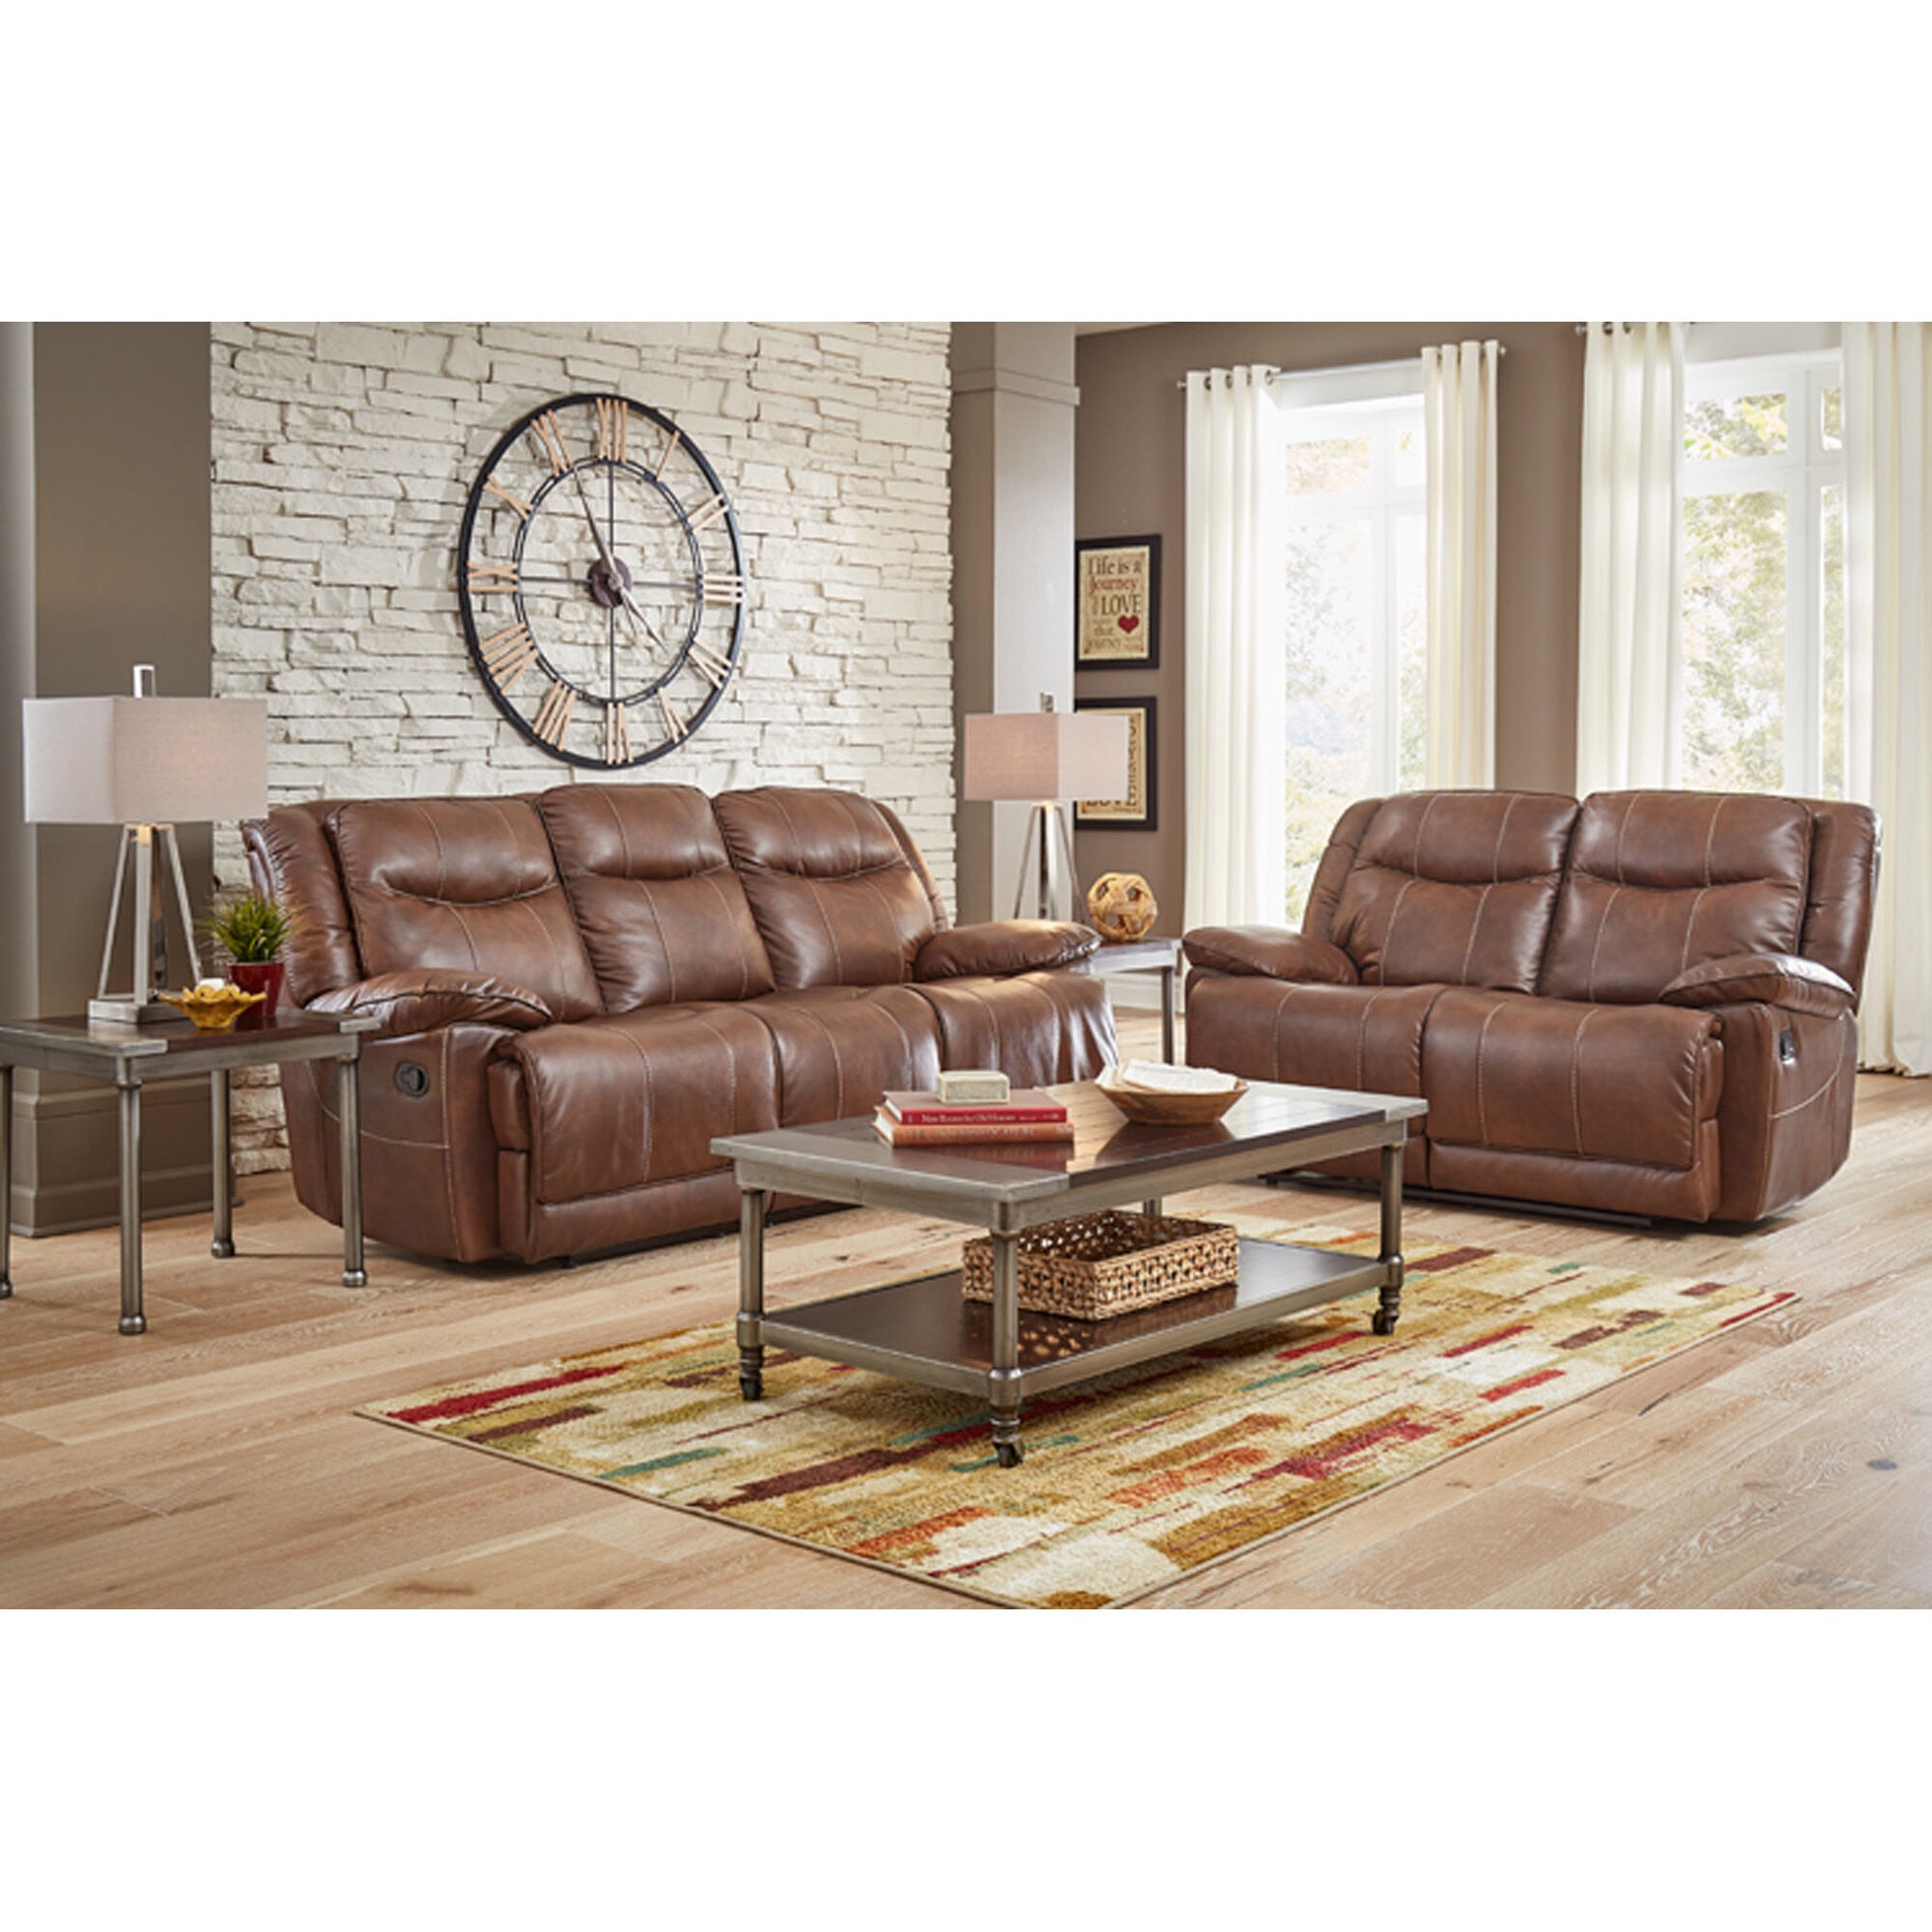 rugs to go with brown leather sofa seafoam colored sofas amalfi living room sets 7-piece barron reclining ...